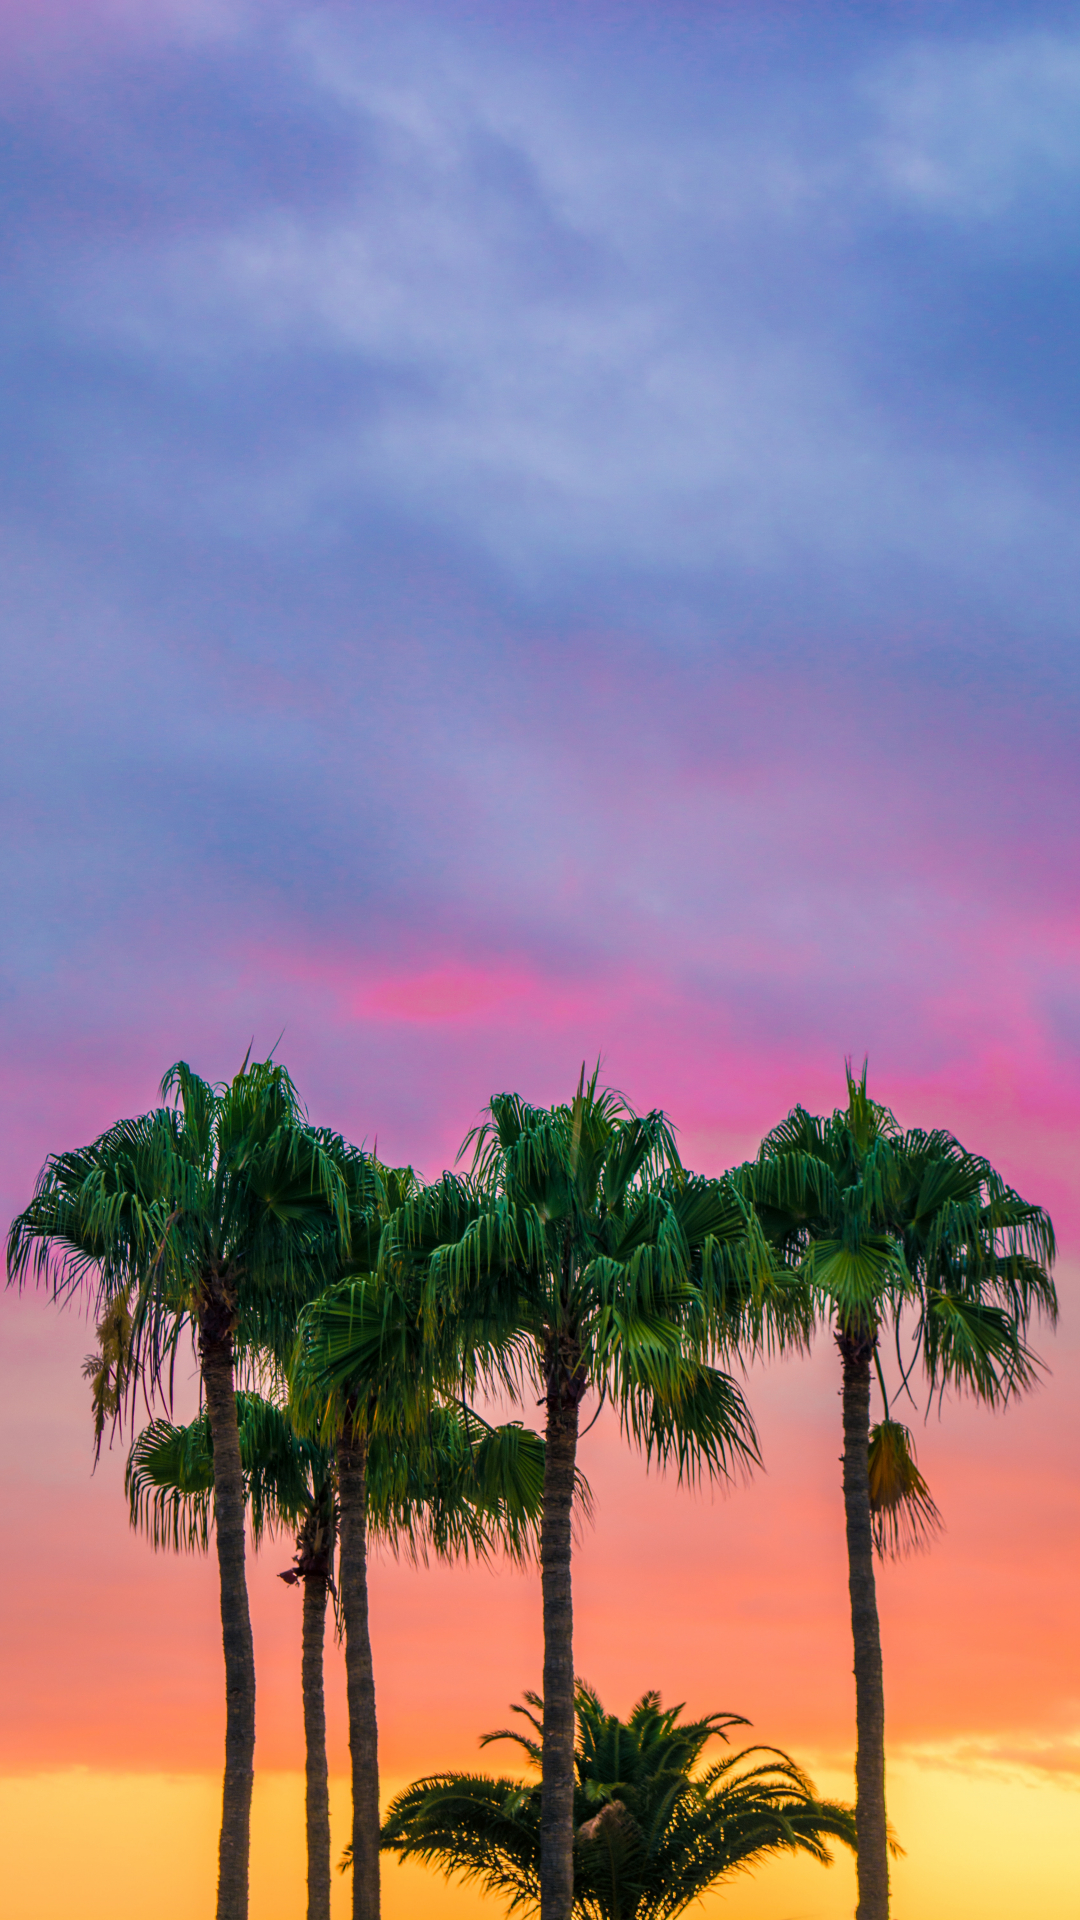 Colorful, Palm Trees Iphone Wallpaper - Best Hd Wallappers - HD Wallpaper